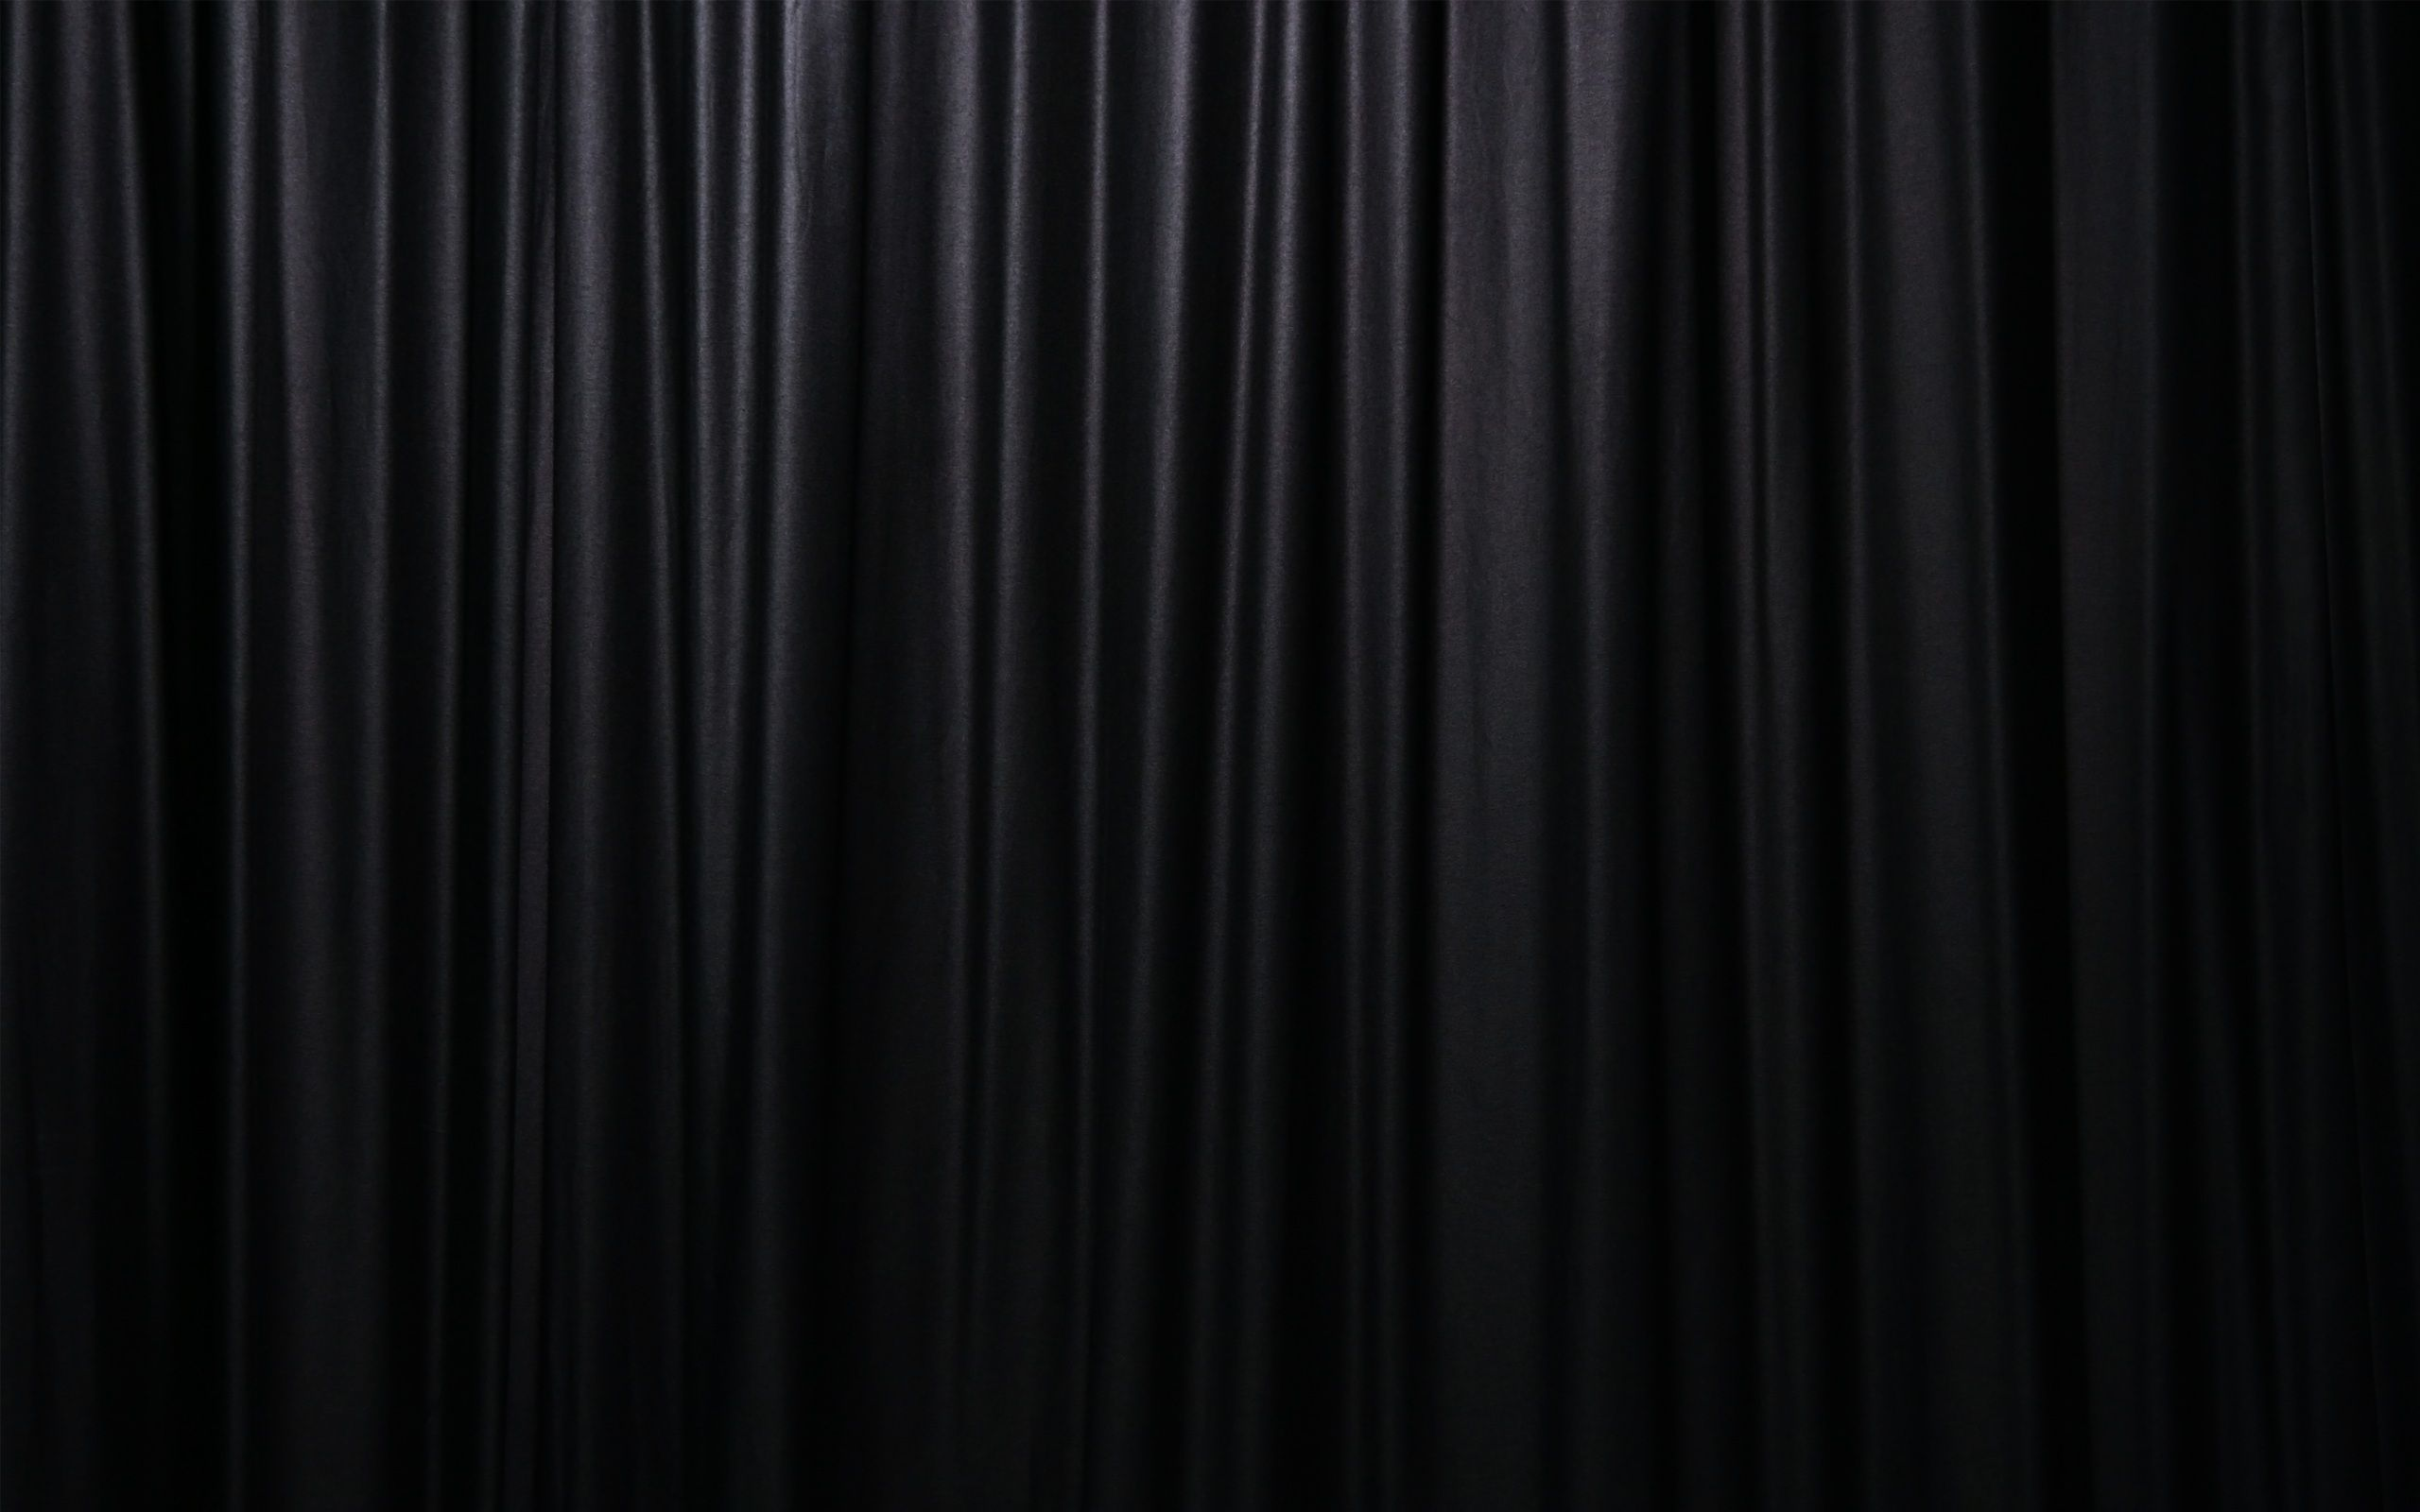 Pin by Josh McGonigle on National YoungArts Foundation | Pinterest ... for Black Curtains Texture  568zmd